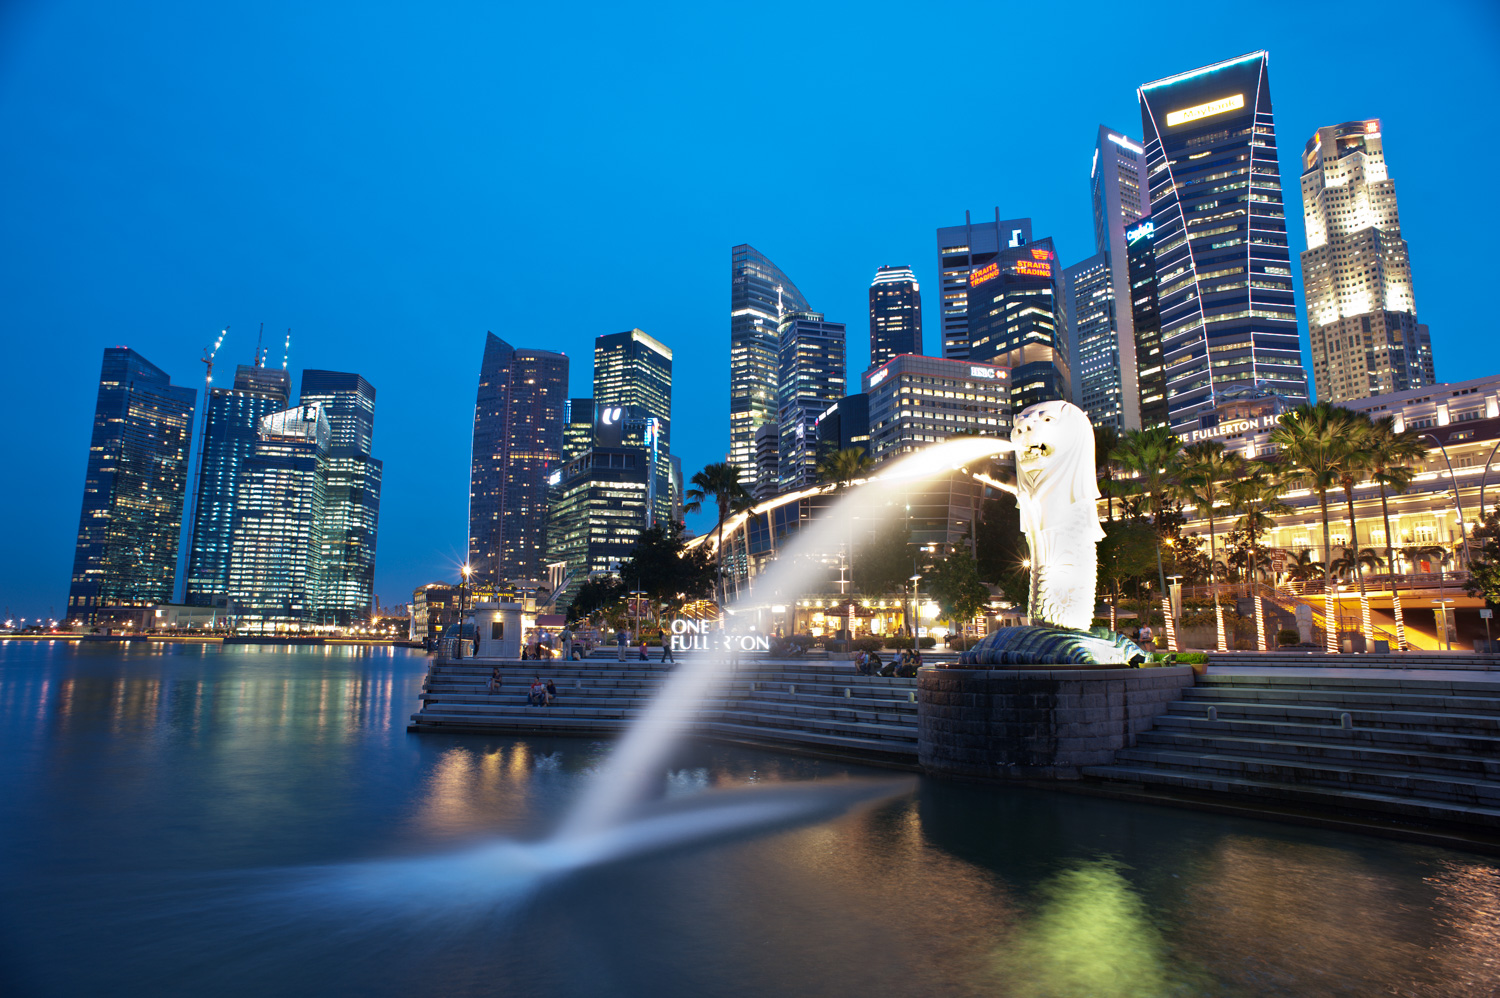 Merlion Park, Singapore Using a Slow Shutter Speed to a Create Sense of Motion